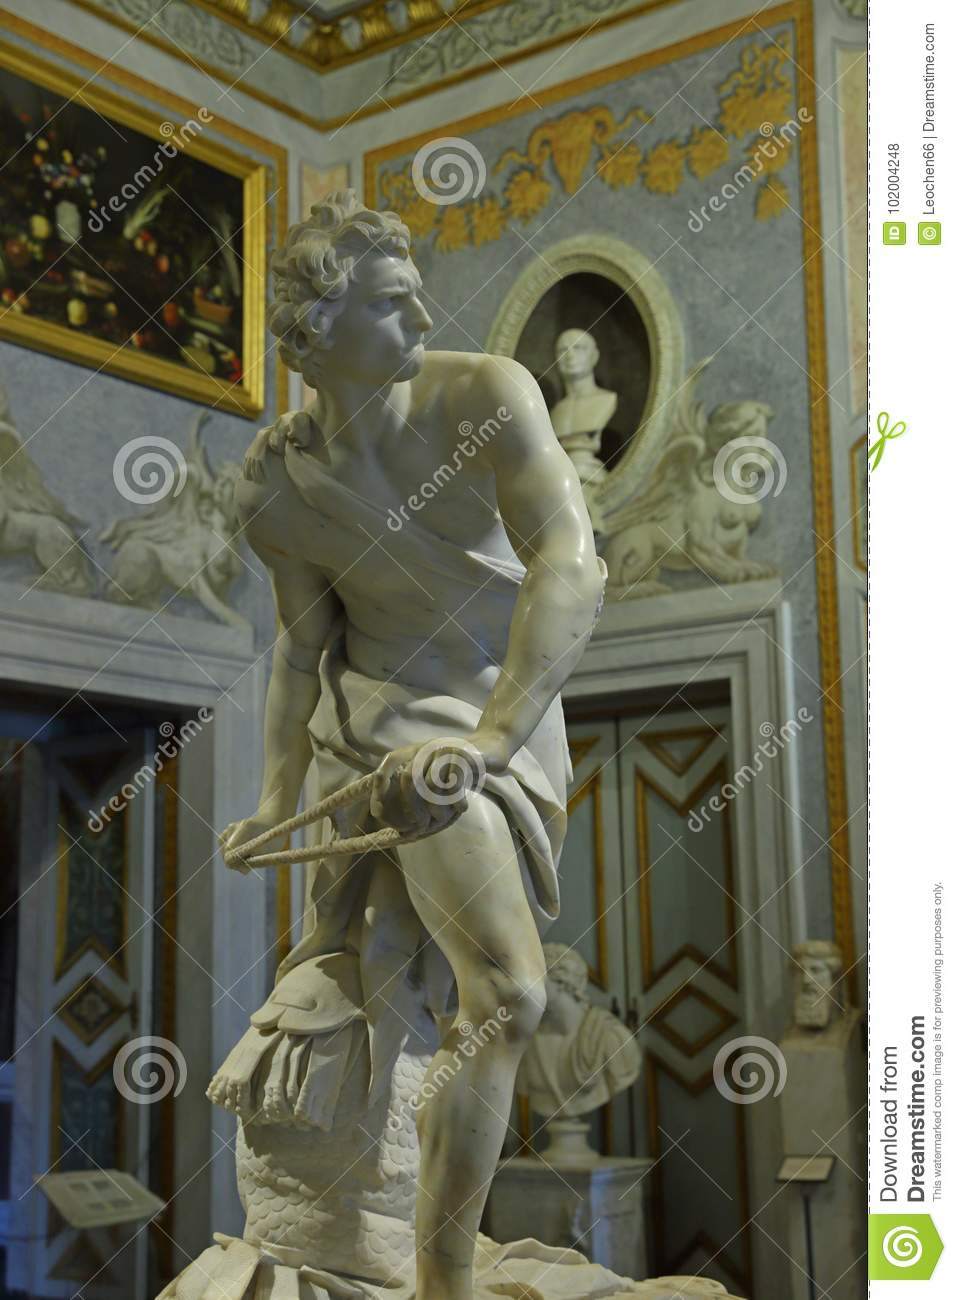 Marble sculpture David by Gian Lorenzo Bernini in Galleria Borghese